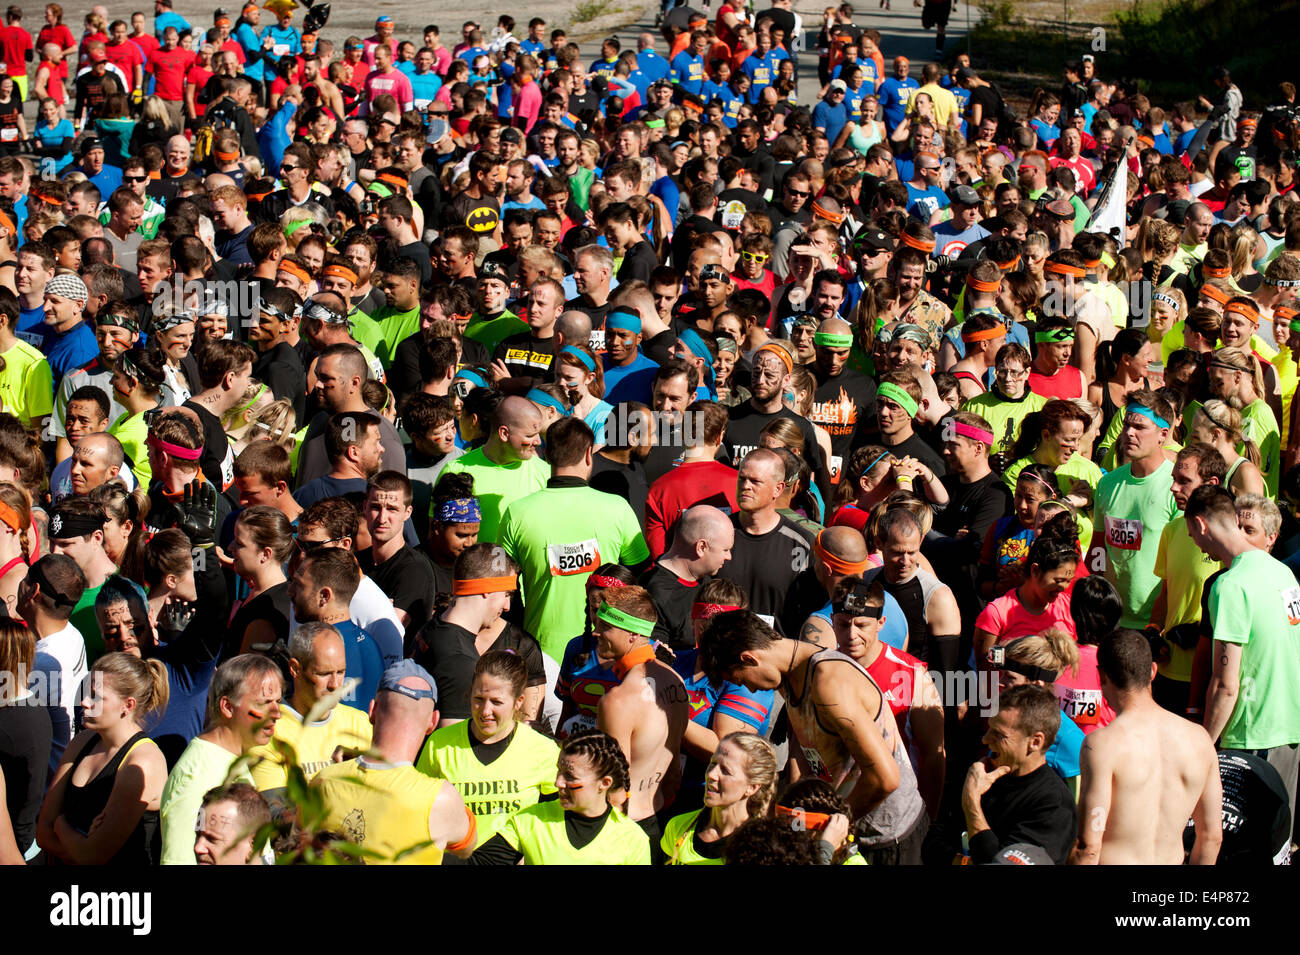 Crowds at the start of the Whistler Vancouver Tough Mudder event. - Stock Image